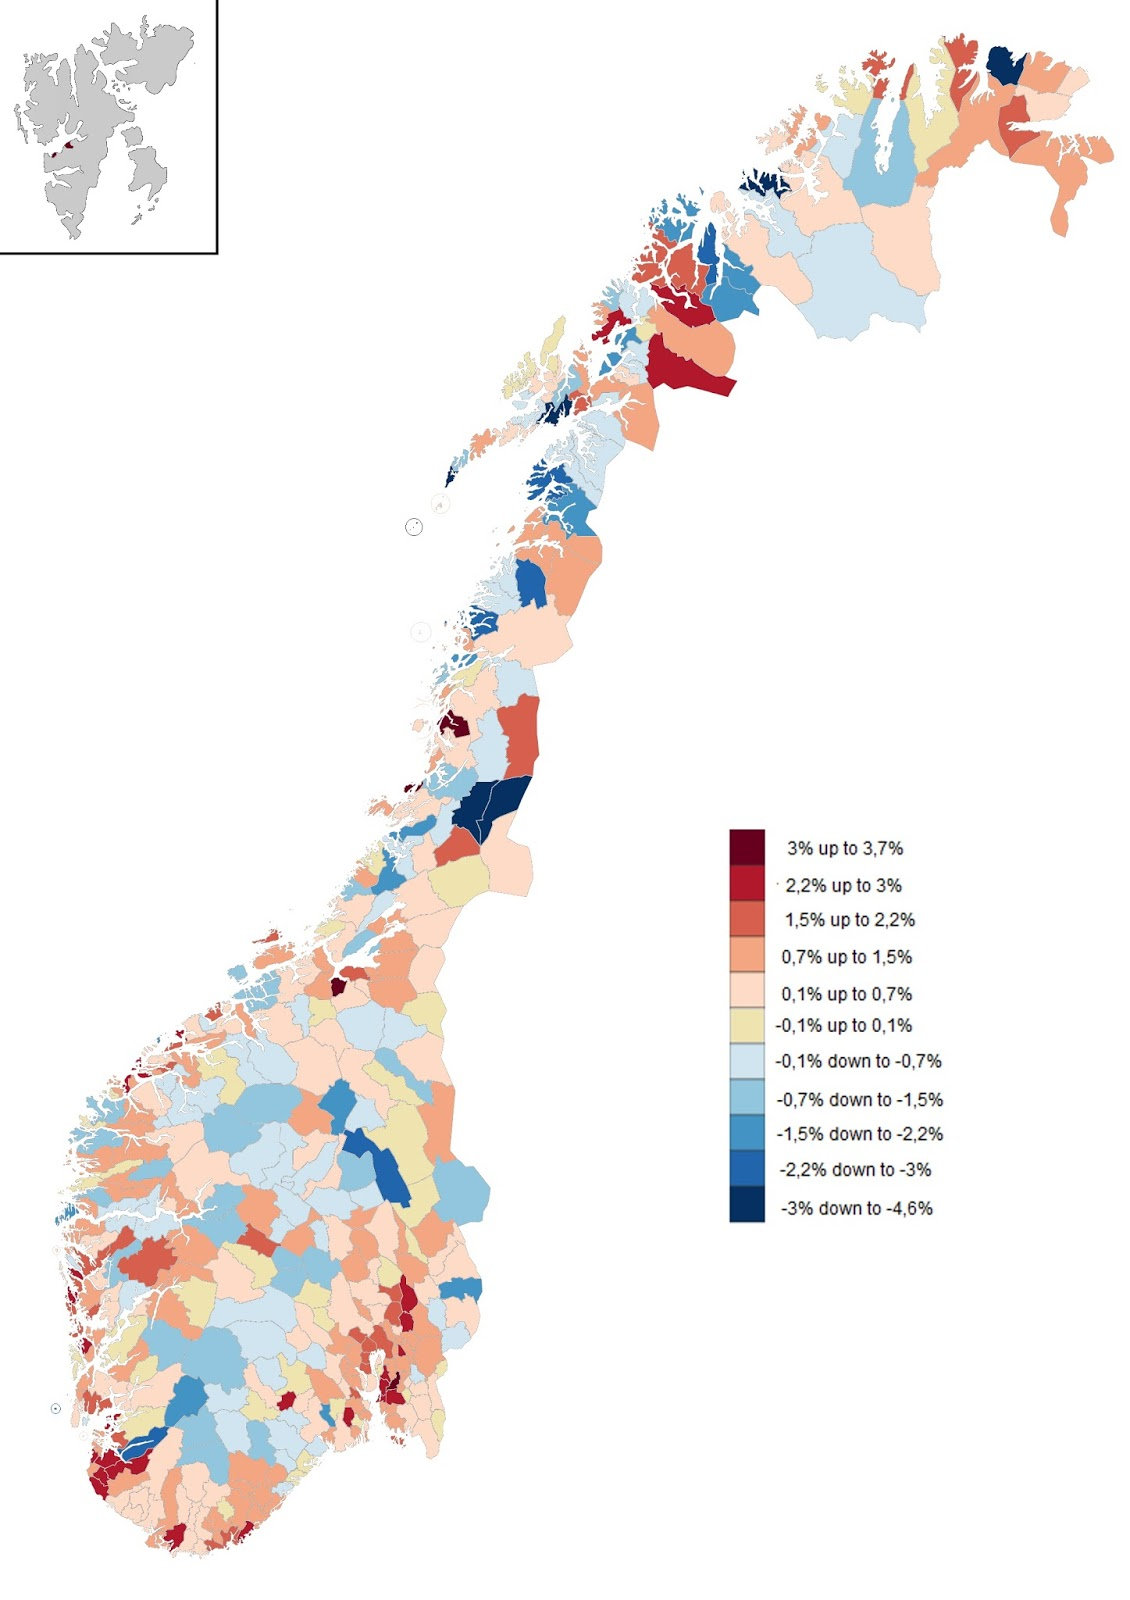 Population changes in Norwegian muncipalities